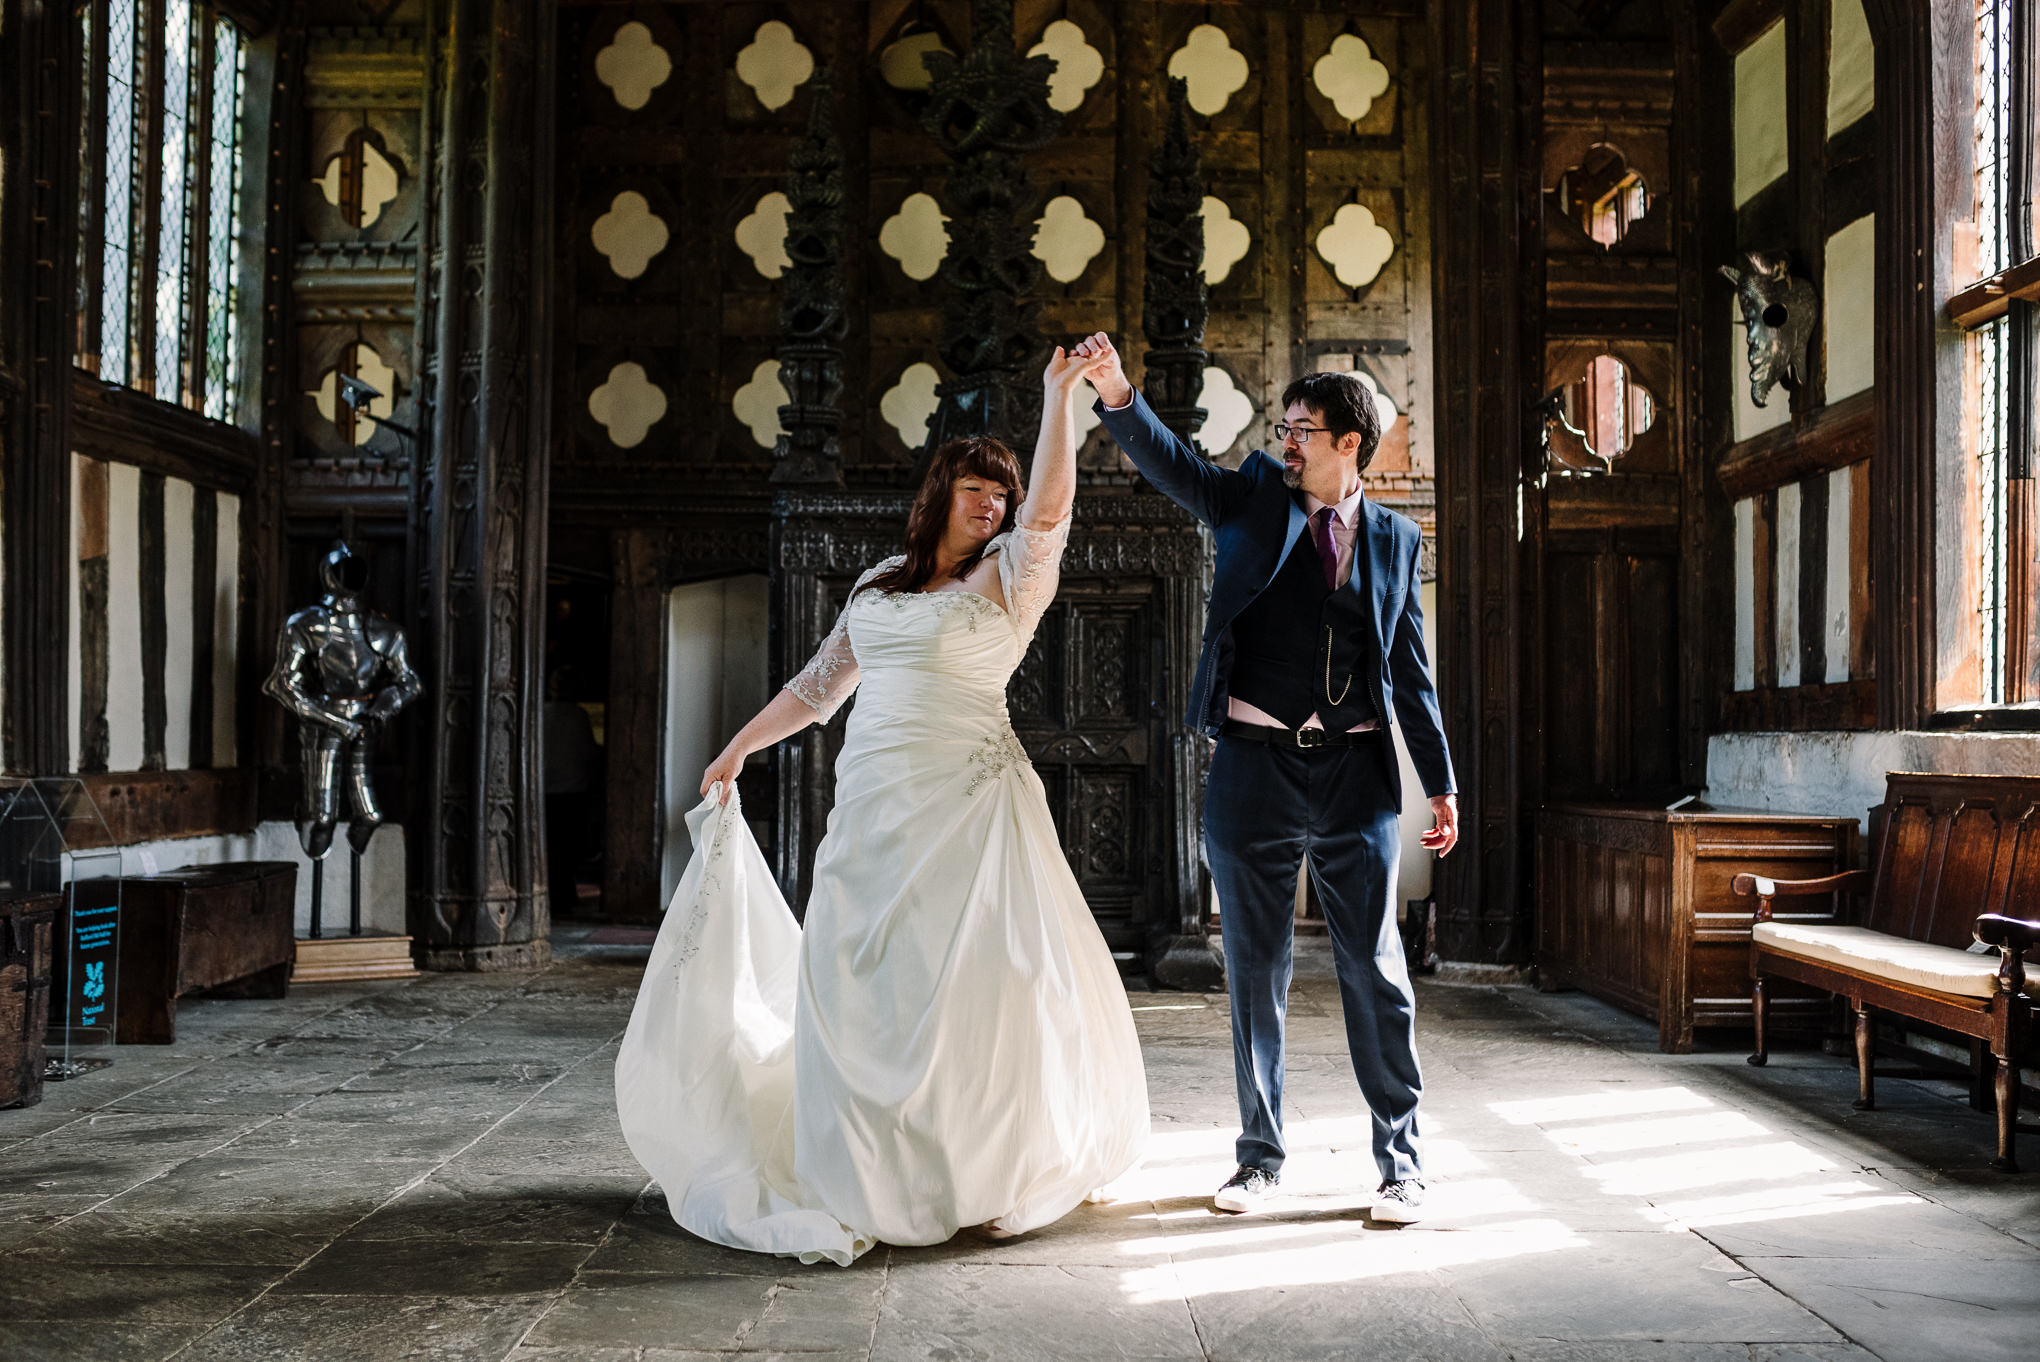 Bride and groom dancing in the Great Hall at Rufford.